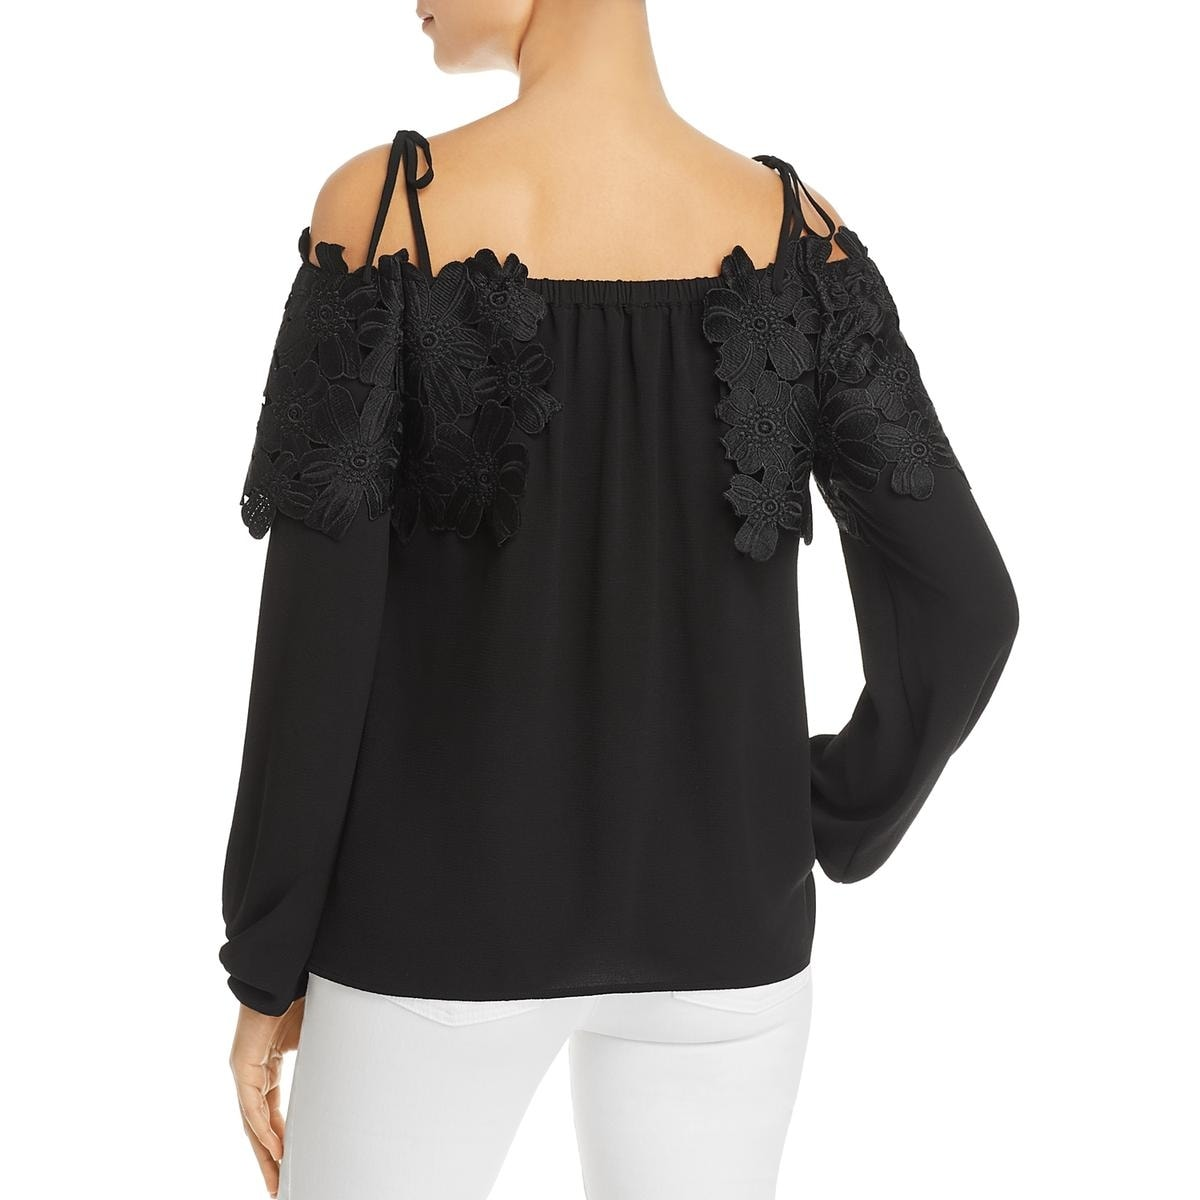 f4c95231ae7d22 Shop MICHAEL Michael Kors Womens Dress Top Cold Shoulder Long Sleeves -  Free Shipping On Orders Over $45 - Overstock.com - 23614932